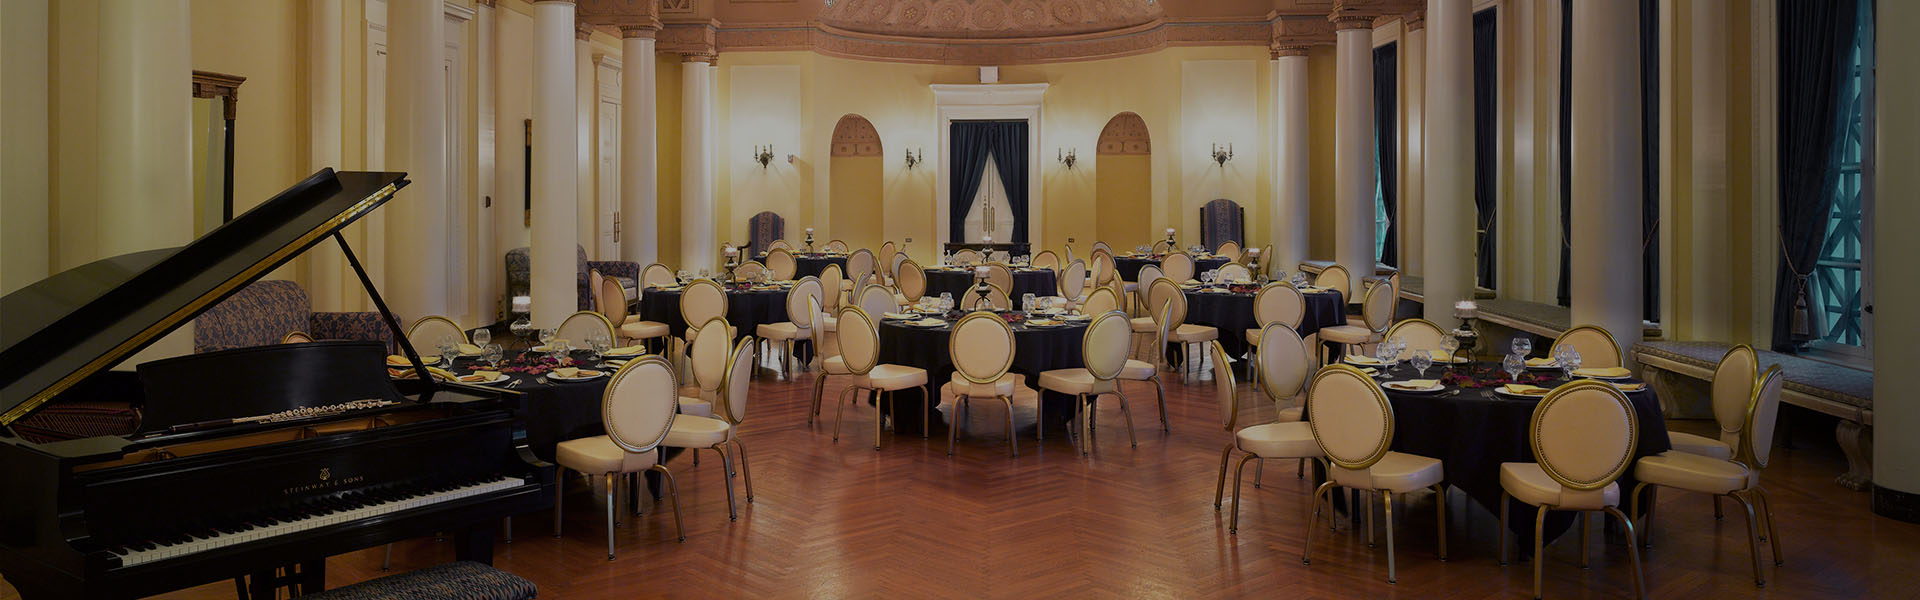 Banquet | Ballroom Seating